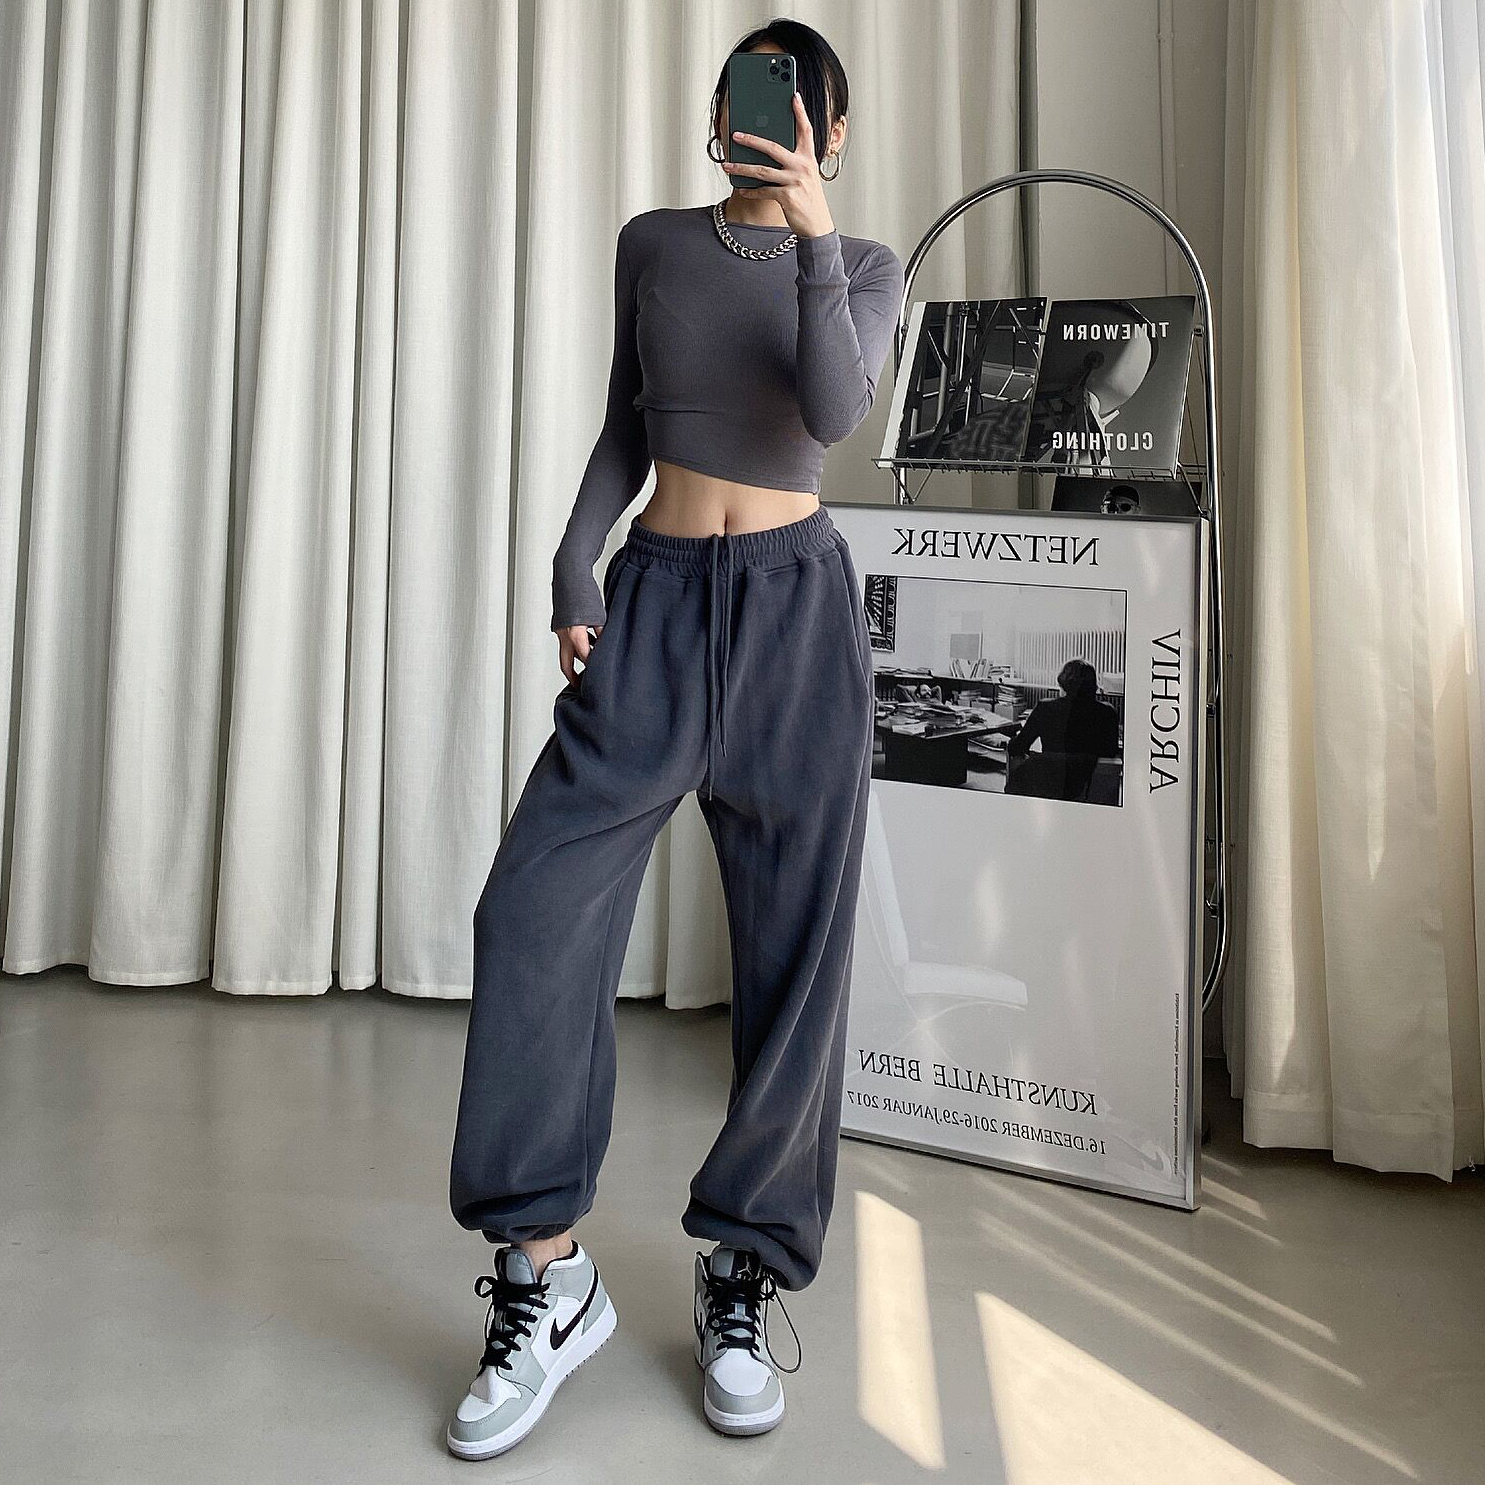 DQSTORE Europe and the United States new high-waist drawstring loose and thin waist and velvet sports casual pants harem pants women